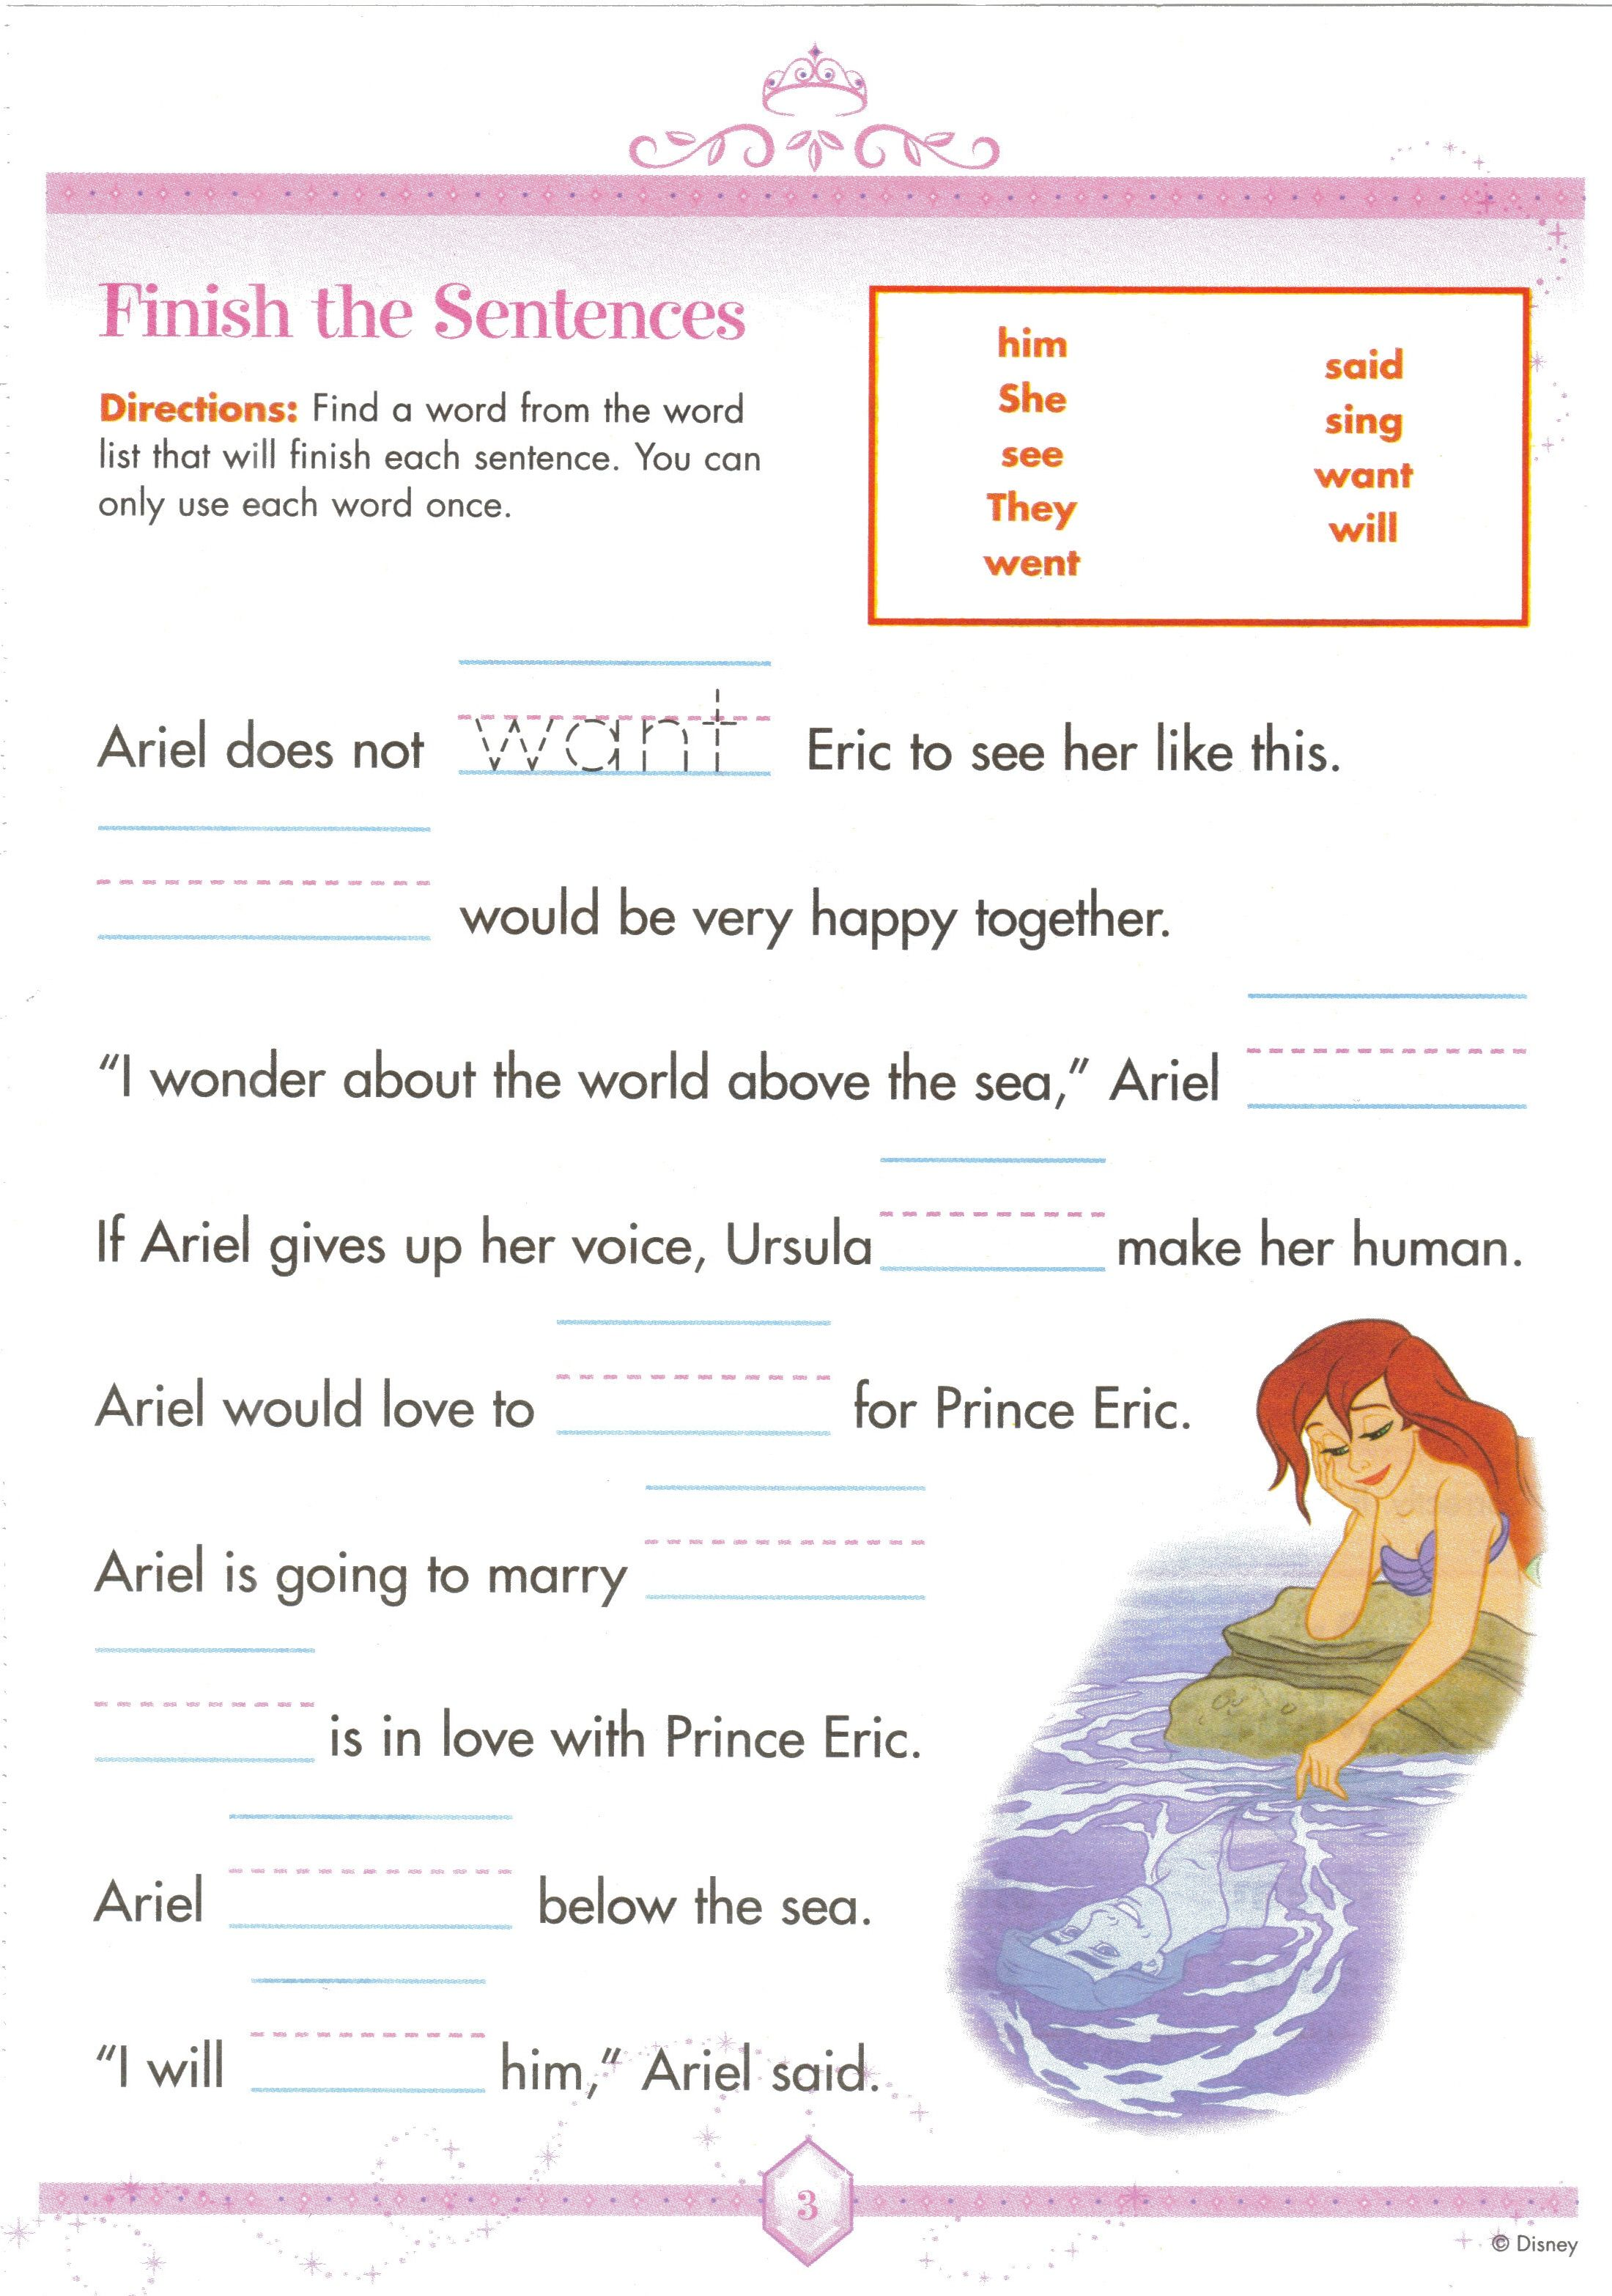 Weirdmailus  Marvelous  Images About Worksheets On Pinterest  Fun Facts For Kids  With Hot  Images About Worksheets On Pinterest  Fun Facts For Kids Earth Day Worksheets And Jungles With Amazing Plural Possessive Pronouns Worksheet Also Addition Of Fractions Worksheet In Addition Wacky Words Worksheet And Free Printable Digraph Worksheets As Well As Proving Triangles Congruent Worksheets Additionally Synonym Worksheets For First Grade From Pinterestcom With Weirdmailus  Hot  Images About Worksheets On Pinterest  Fun Facts For Kids  With Amazing  Images About Worksheets On Pinterest  Fun Facts For Kids Earth Day Worksheets And Jungles And Marvelous Plural Possessive Pronouns Worksheet Also Addition Of Fractions Worksheet In Addition Wacky Words Worksheet From Pinterestcom